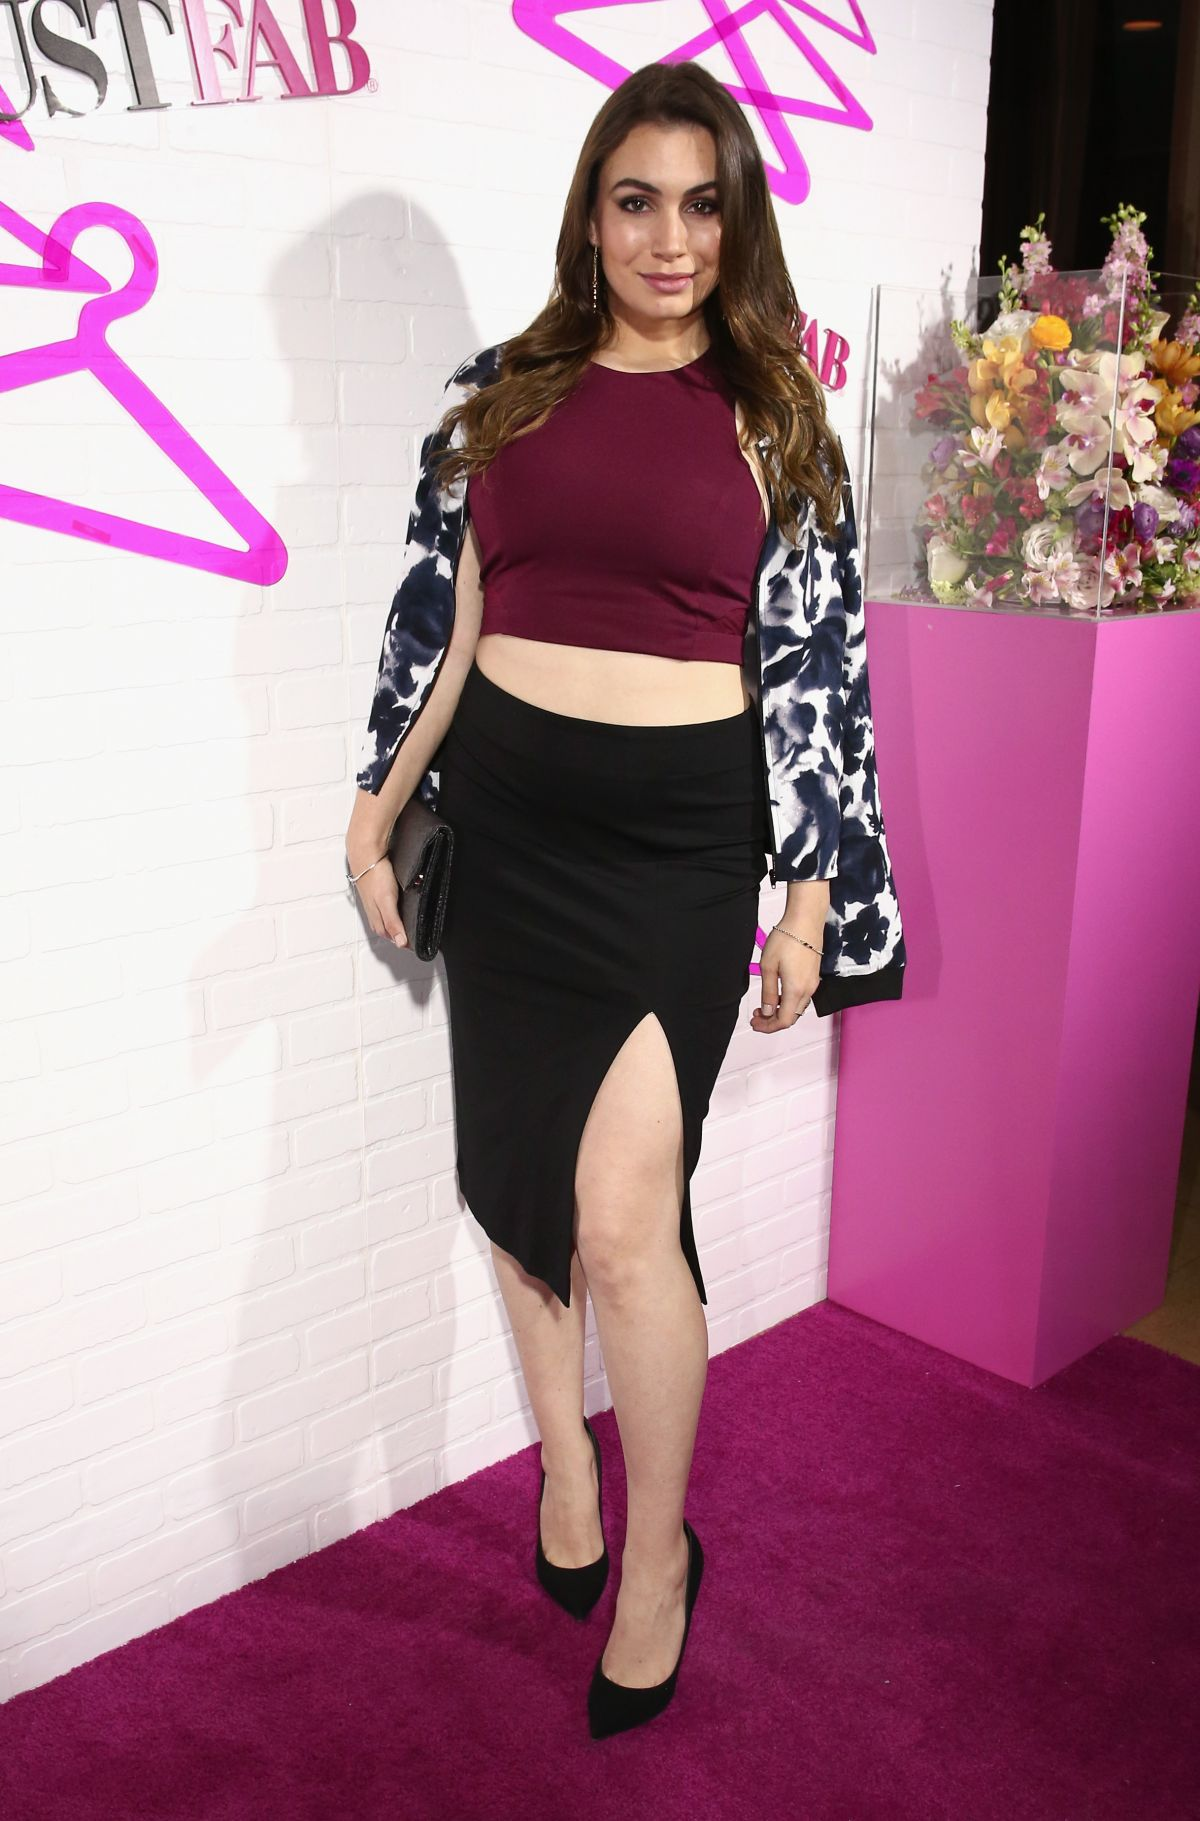 SOPHIE SIMMONS at Justfab Ready-to-wear Launch Party in West Hollywood